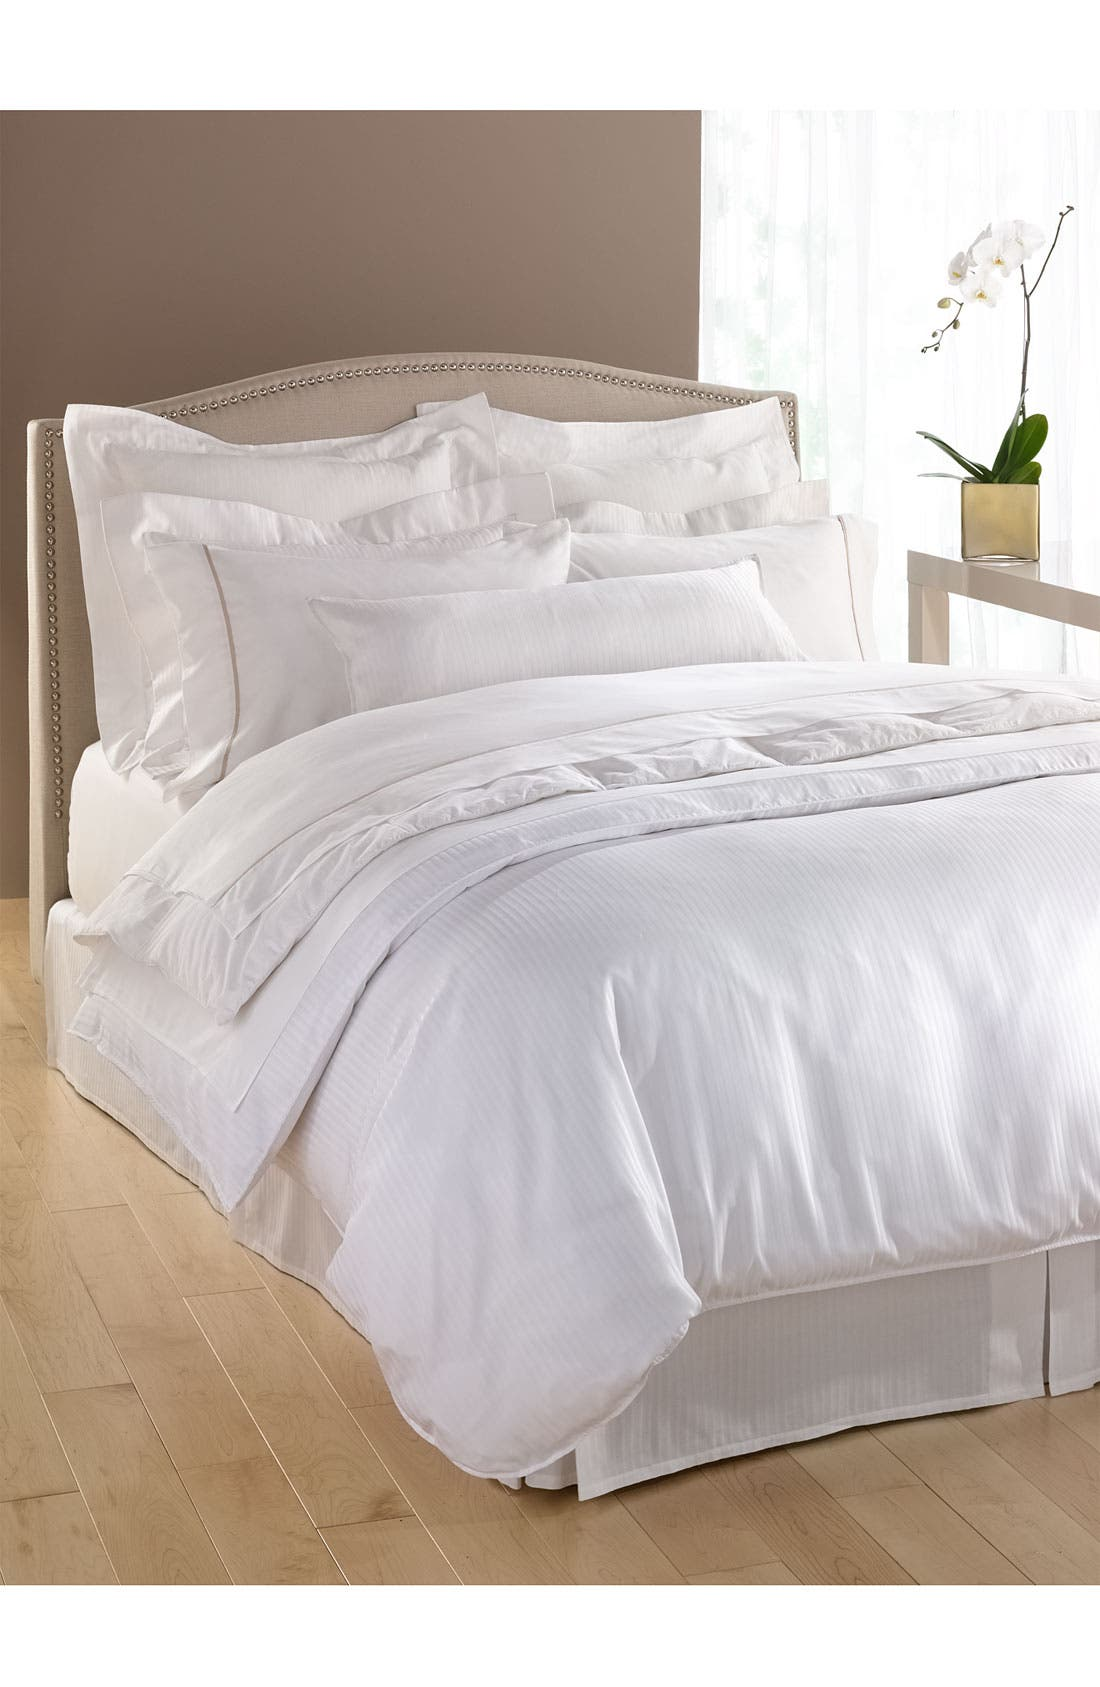 300 Thread Count Luxe Fitted Sheet,                             Alternate thumbnail 2, color,                             WHI